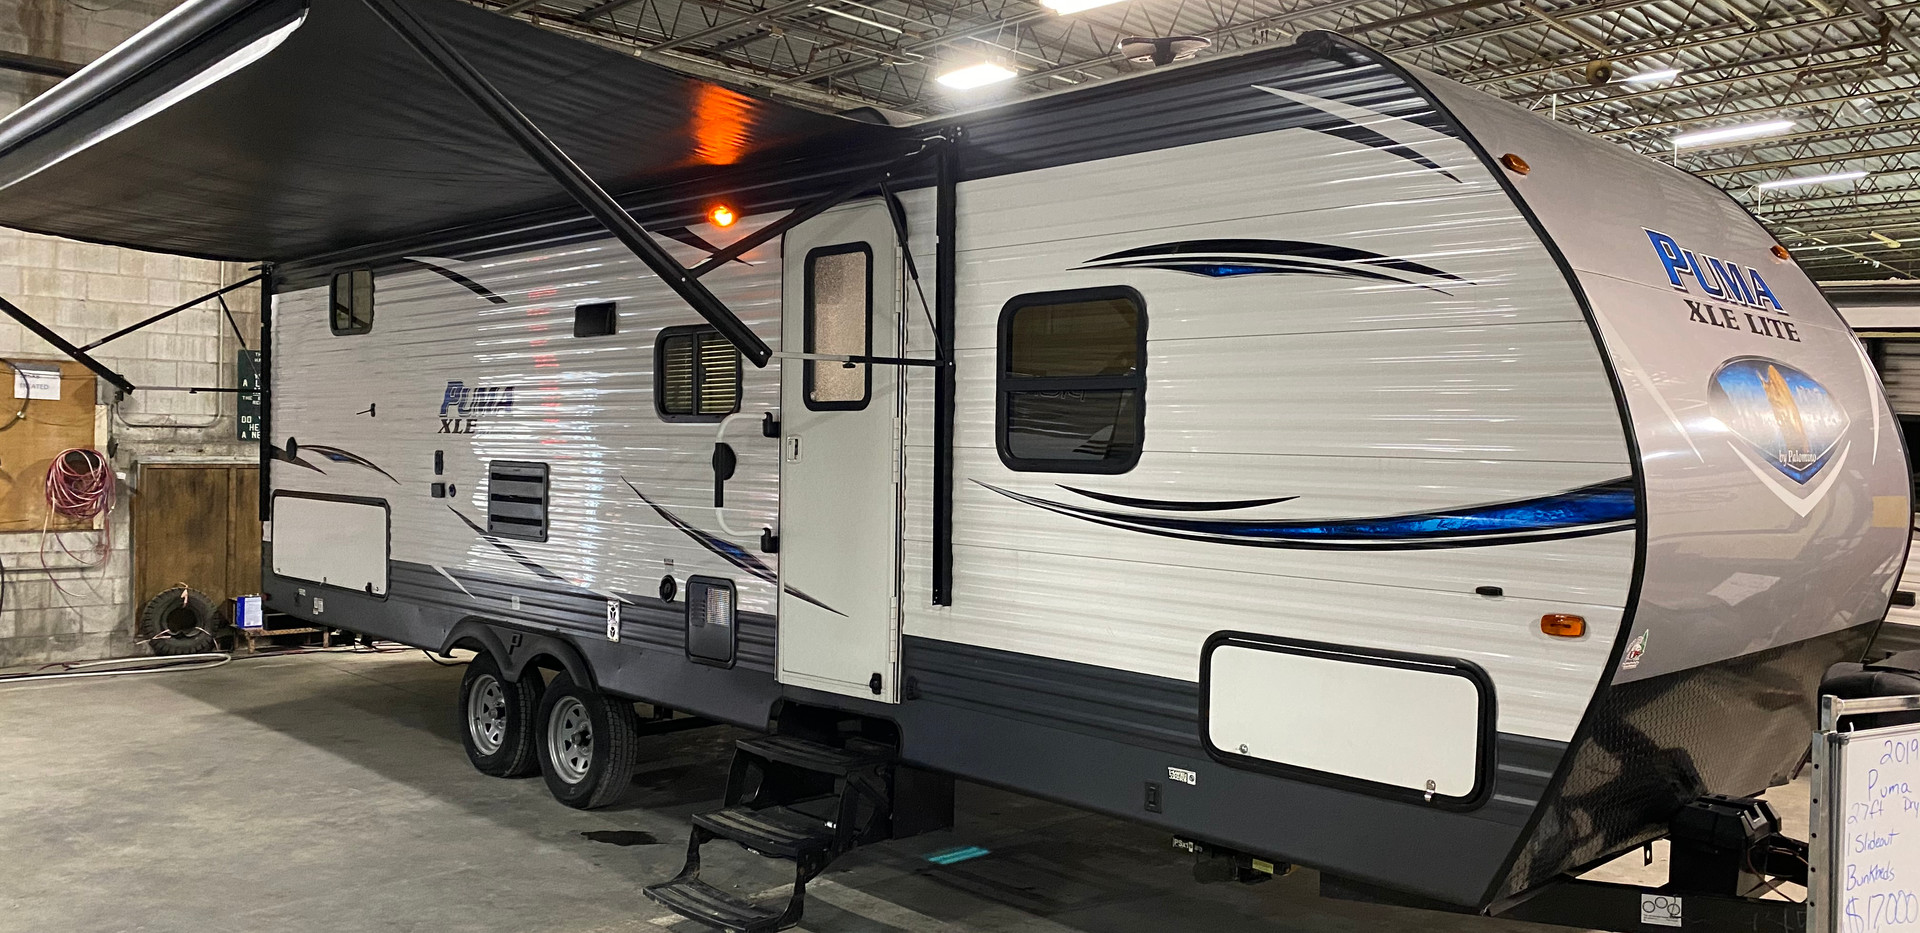 019 Palomino Puma XLE lite. Model number is 27RBQC. it is 27ft long, dry weight is 6000lbs. Has one slideout. Electric awning and electric stabilizer jacks!! Big outside storage area. Inside is very beautiful bunk beds in the back corner. Fold down table and couch. Does have a queen bed in the front!  Everything works as it should.  Does have a rebuilt title. $17,000.